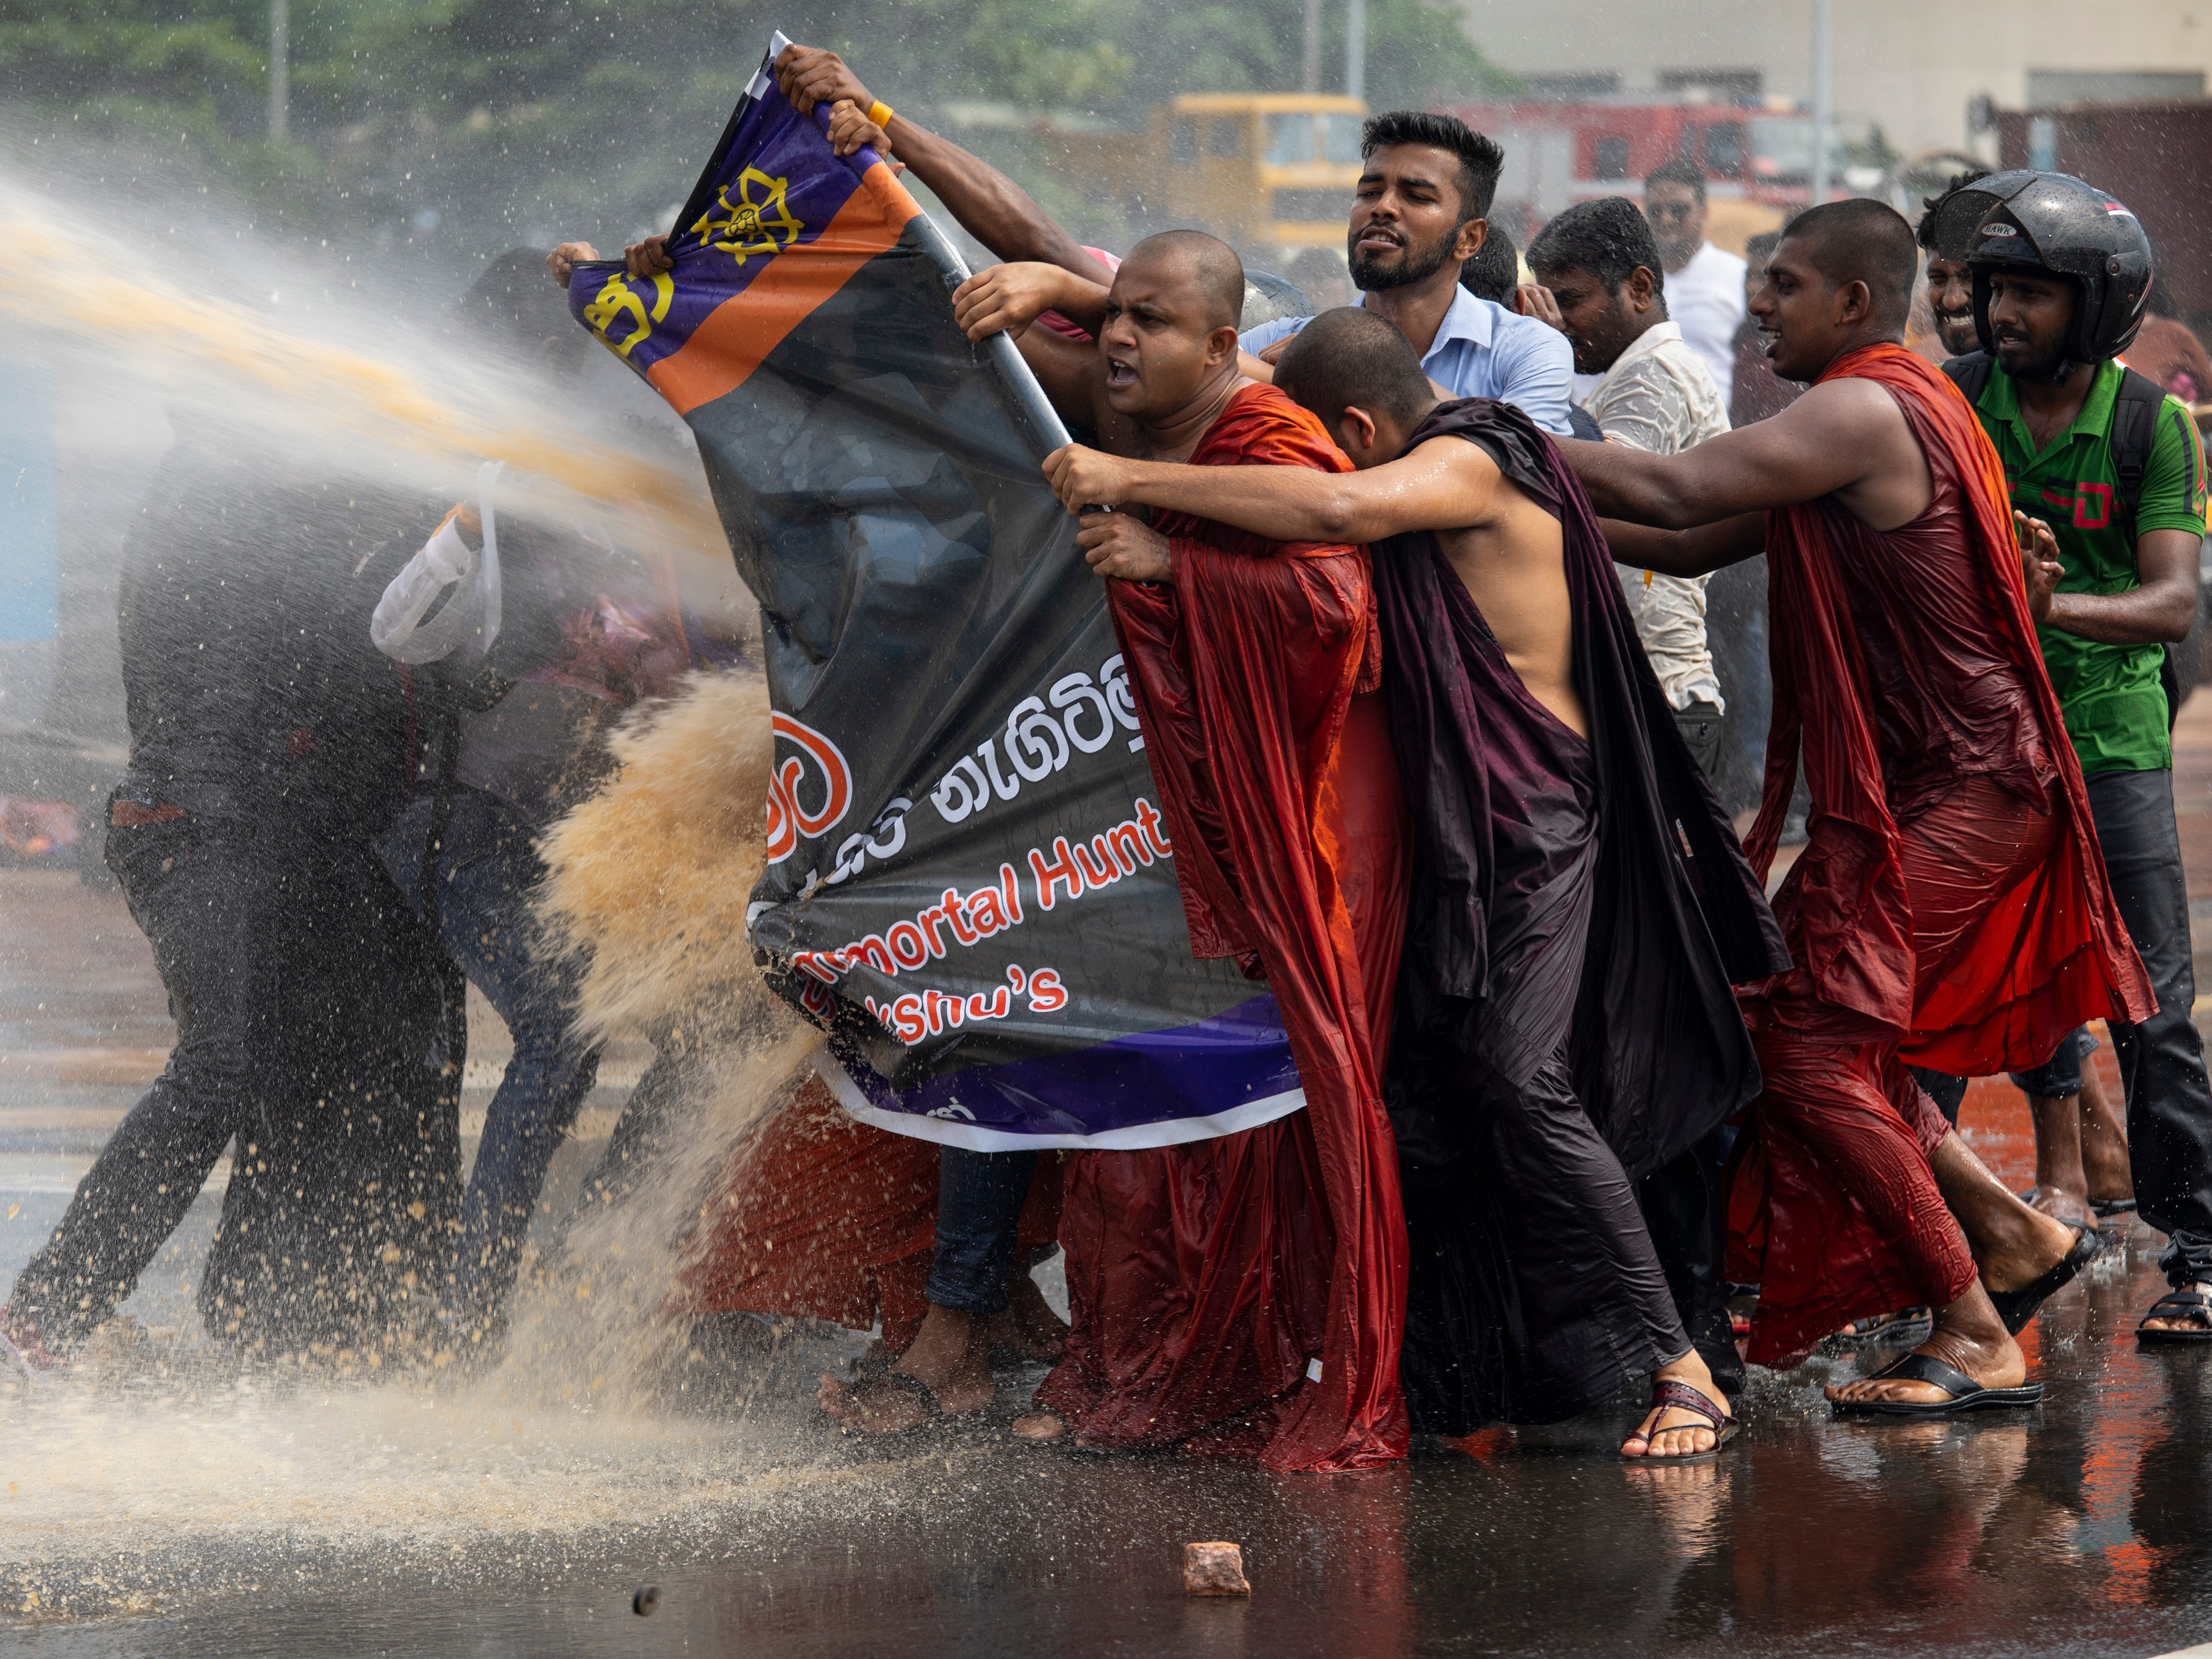 Police fire teargas and use water cannons to disperse the Sinhala extremist monks from Bodu Bala Sena (BBS) on November 19, 2018 in Colombo, Sri Lanka. The monks came to meet with Sri Lanka's president to hand over a message calling for the release of (BBS) General Secretary Ven. Galagoda Aththe Gnanasara Thera who was sentenced to six years in prison. Sri Lankas president later apologized for the severe treatment of the protesters.